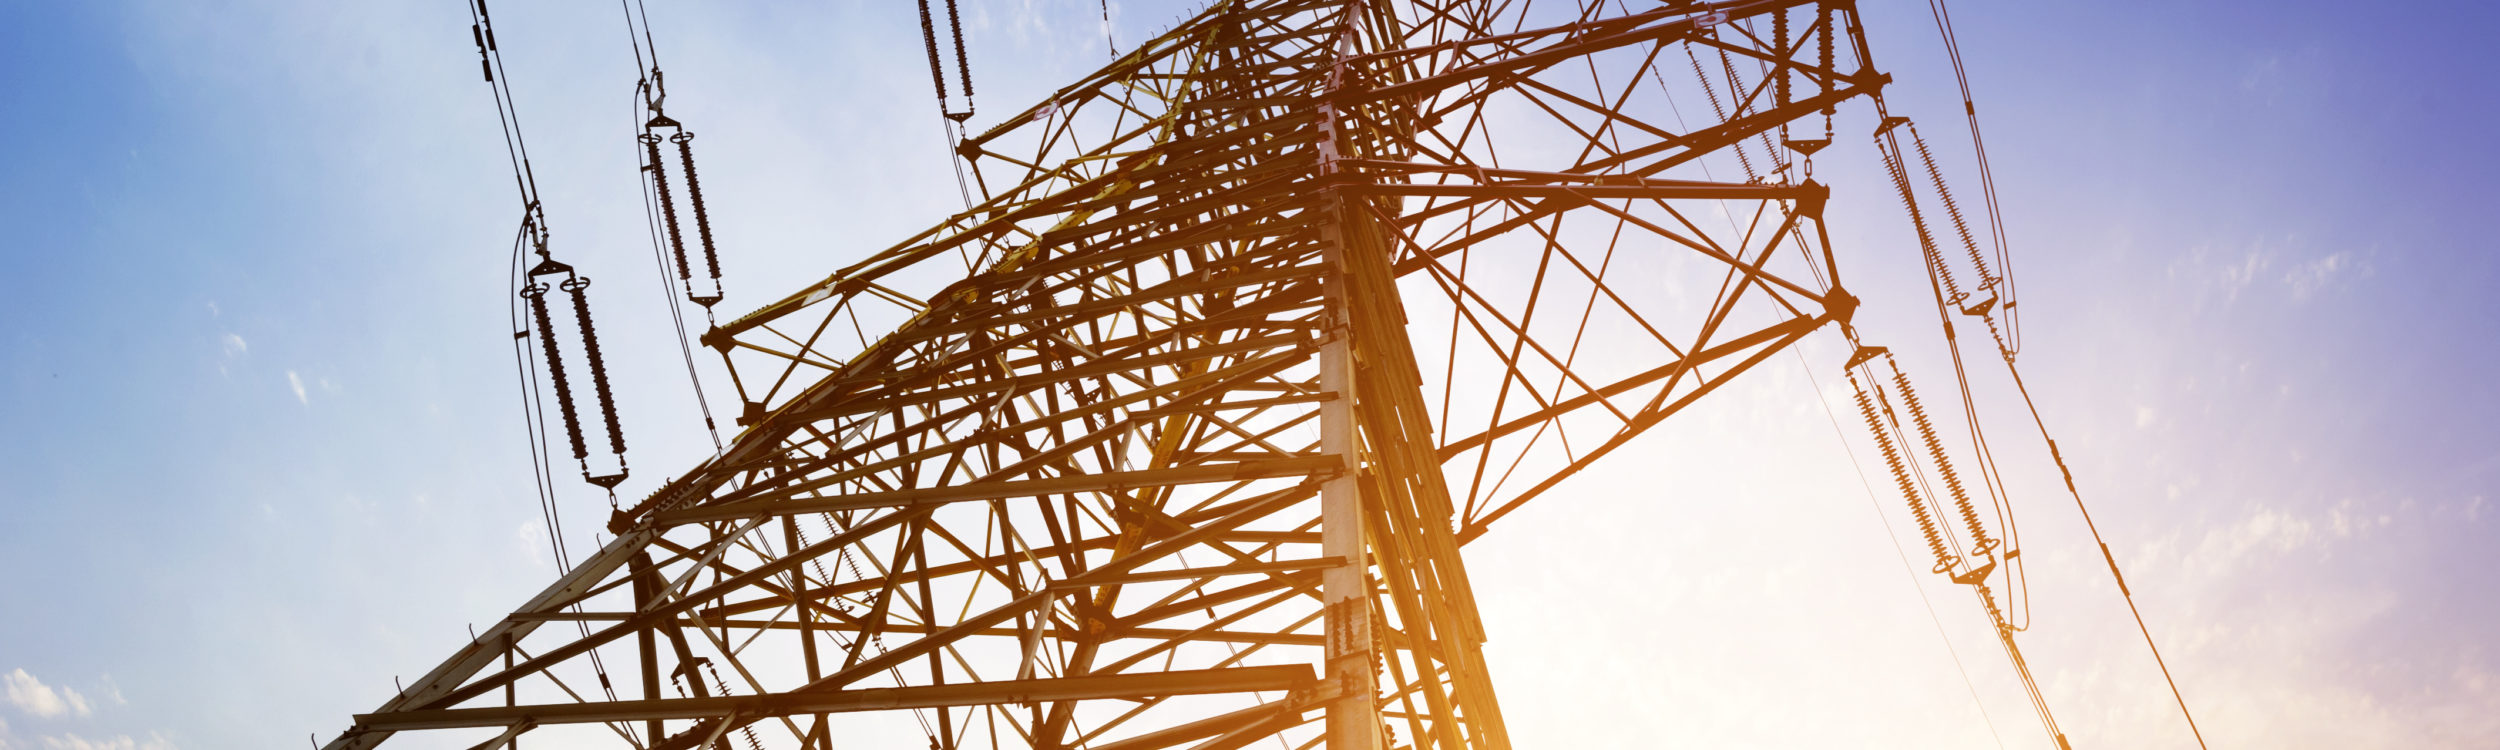 LIVE WEBINAR: Unlocking Operational Excellence for Your Utilities Organization featured image